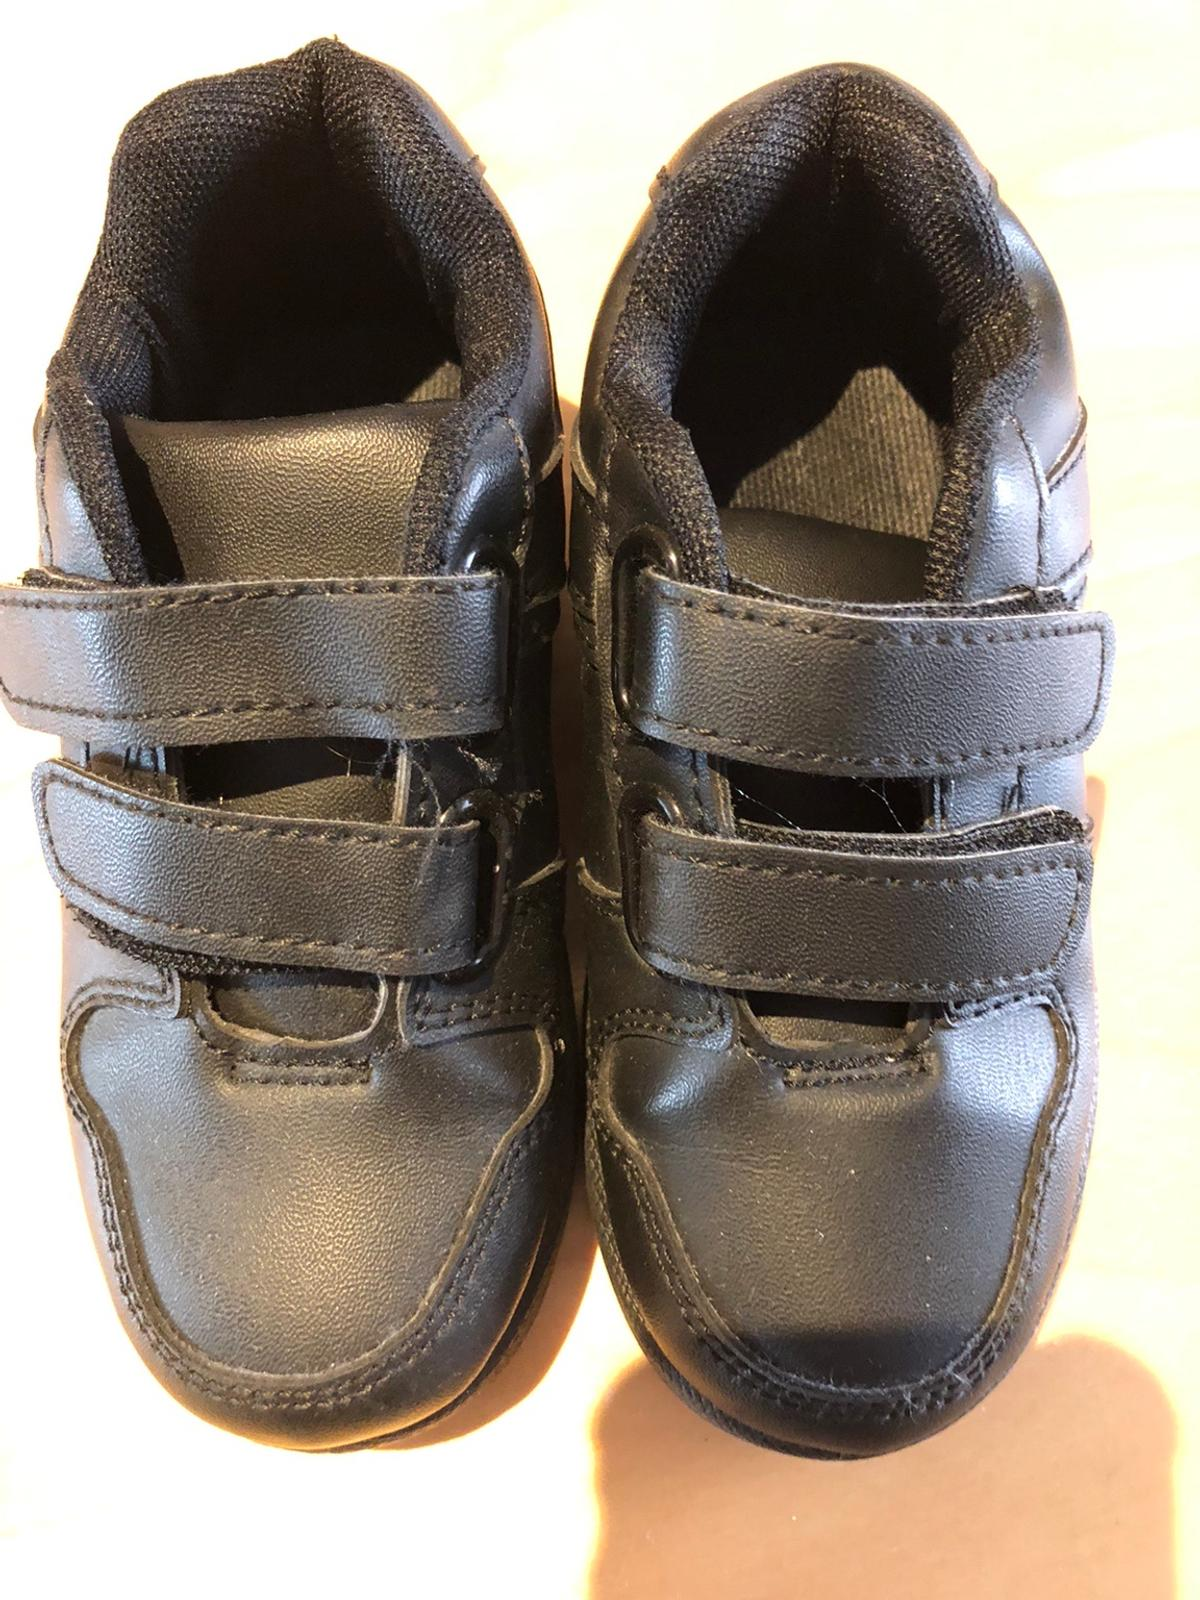 Boys black shoes good condition size 8 £6  Collection from Bolton Bl3 area